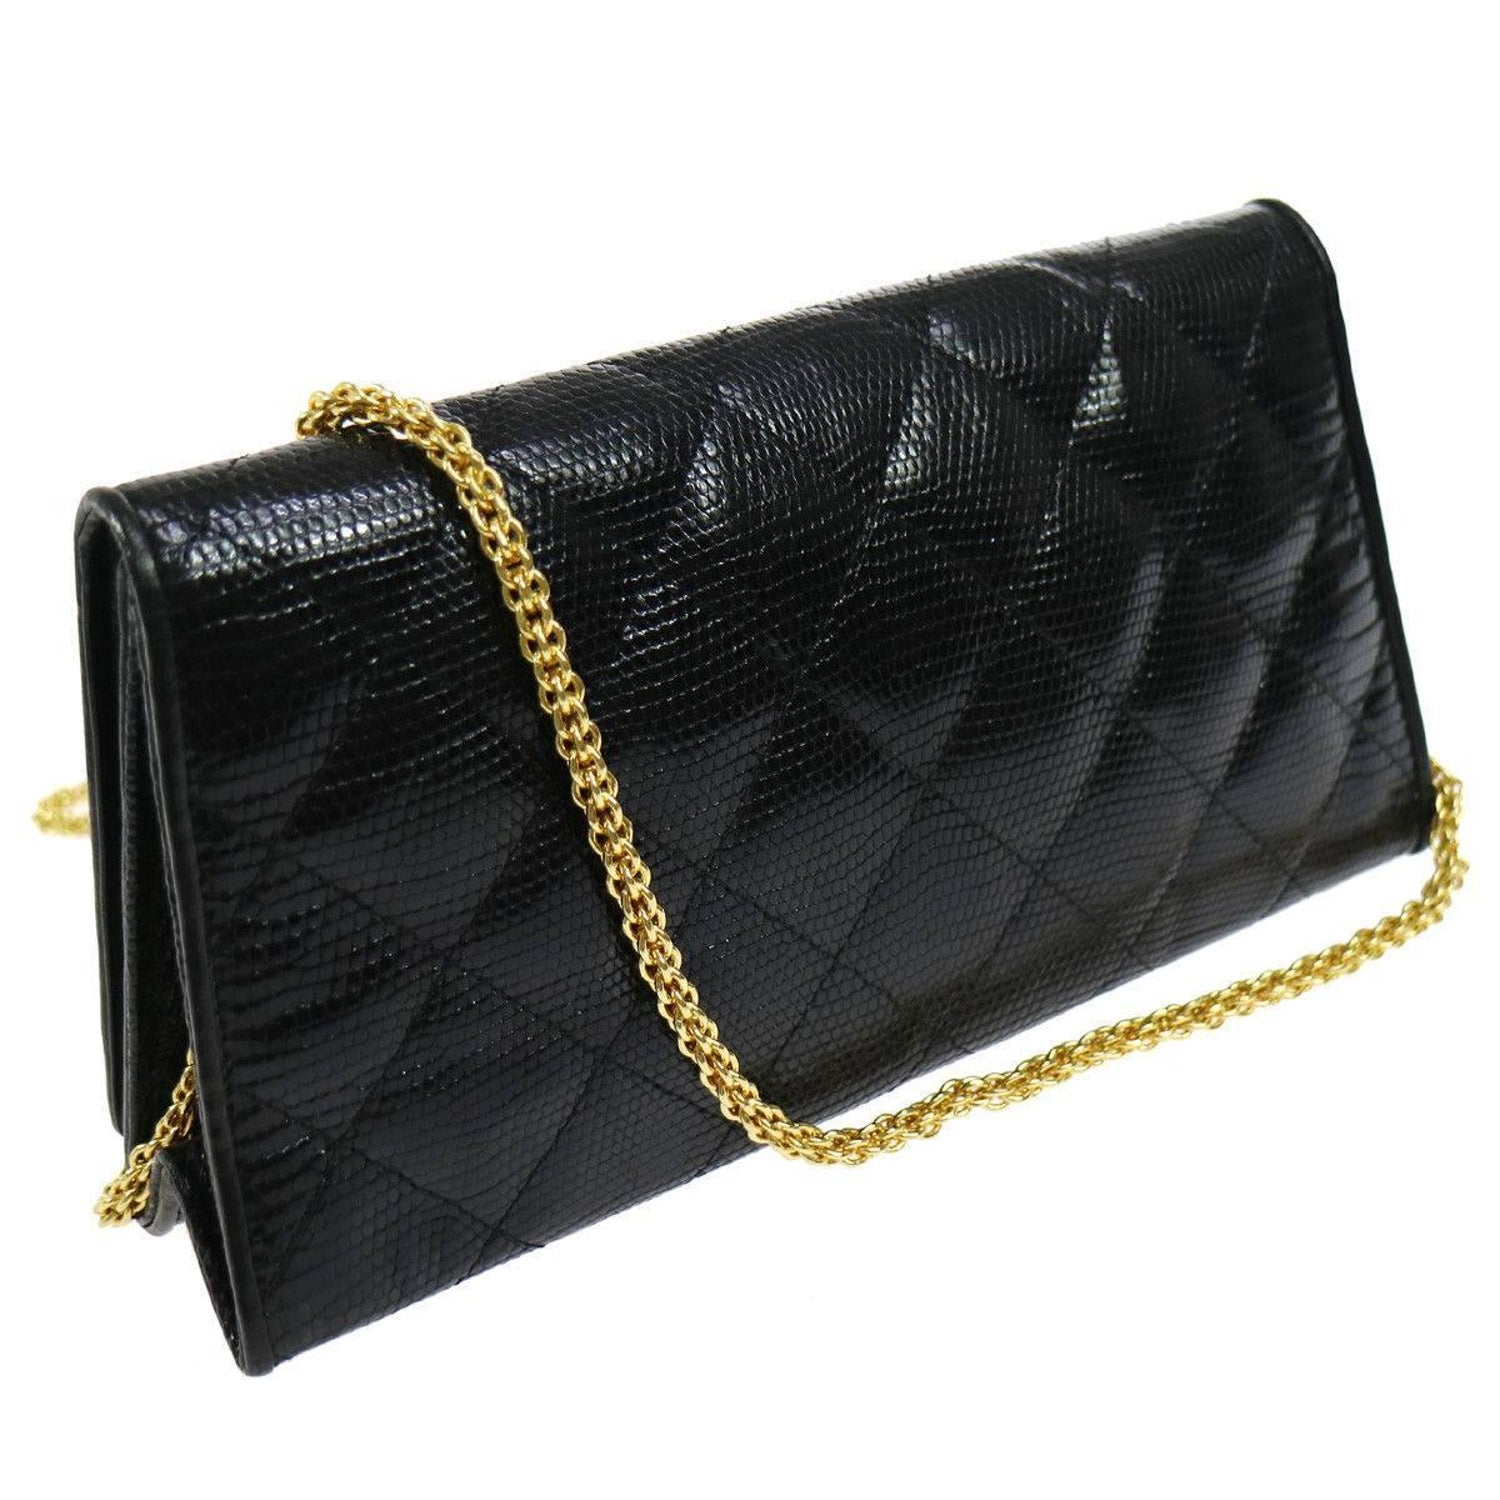 e79ea9fb4aa1f5 Chanel Black Lizard Leather Gold Chain 2 in 1 Clutch Flap Evening Shoulder  Bag at 1stdibs